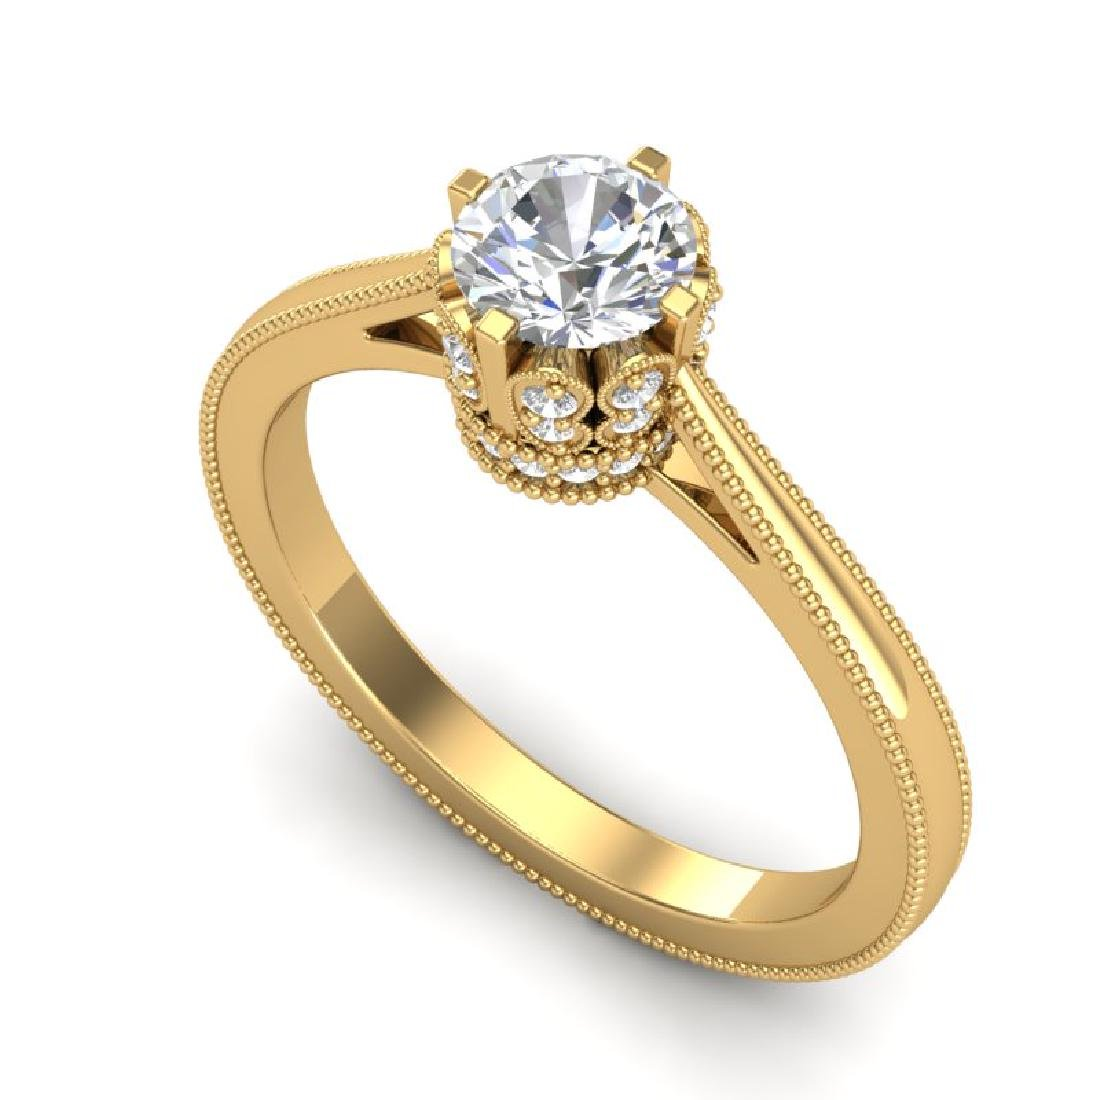 0.81 CTW VS/SI Diamond Art Deco Ring 18K Yellow Gold